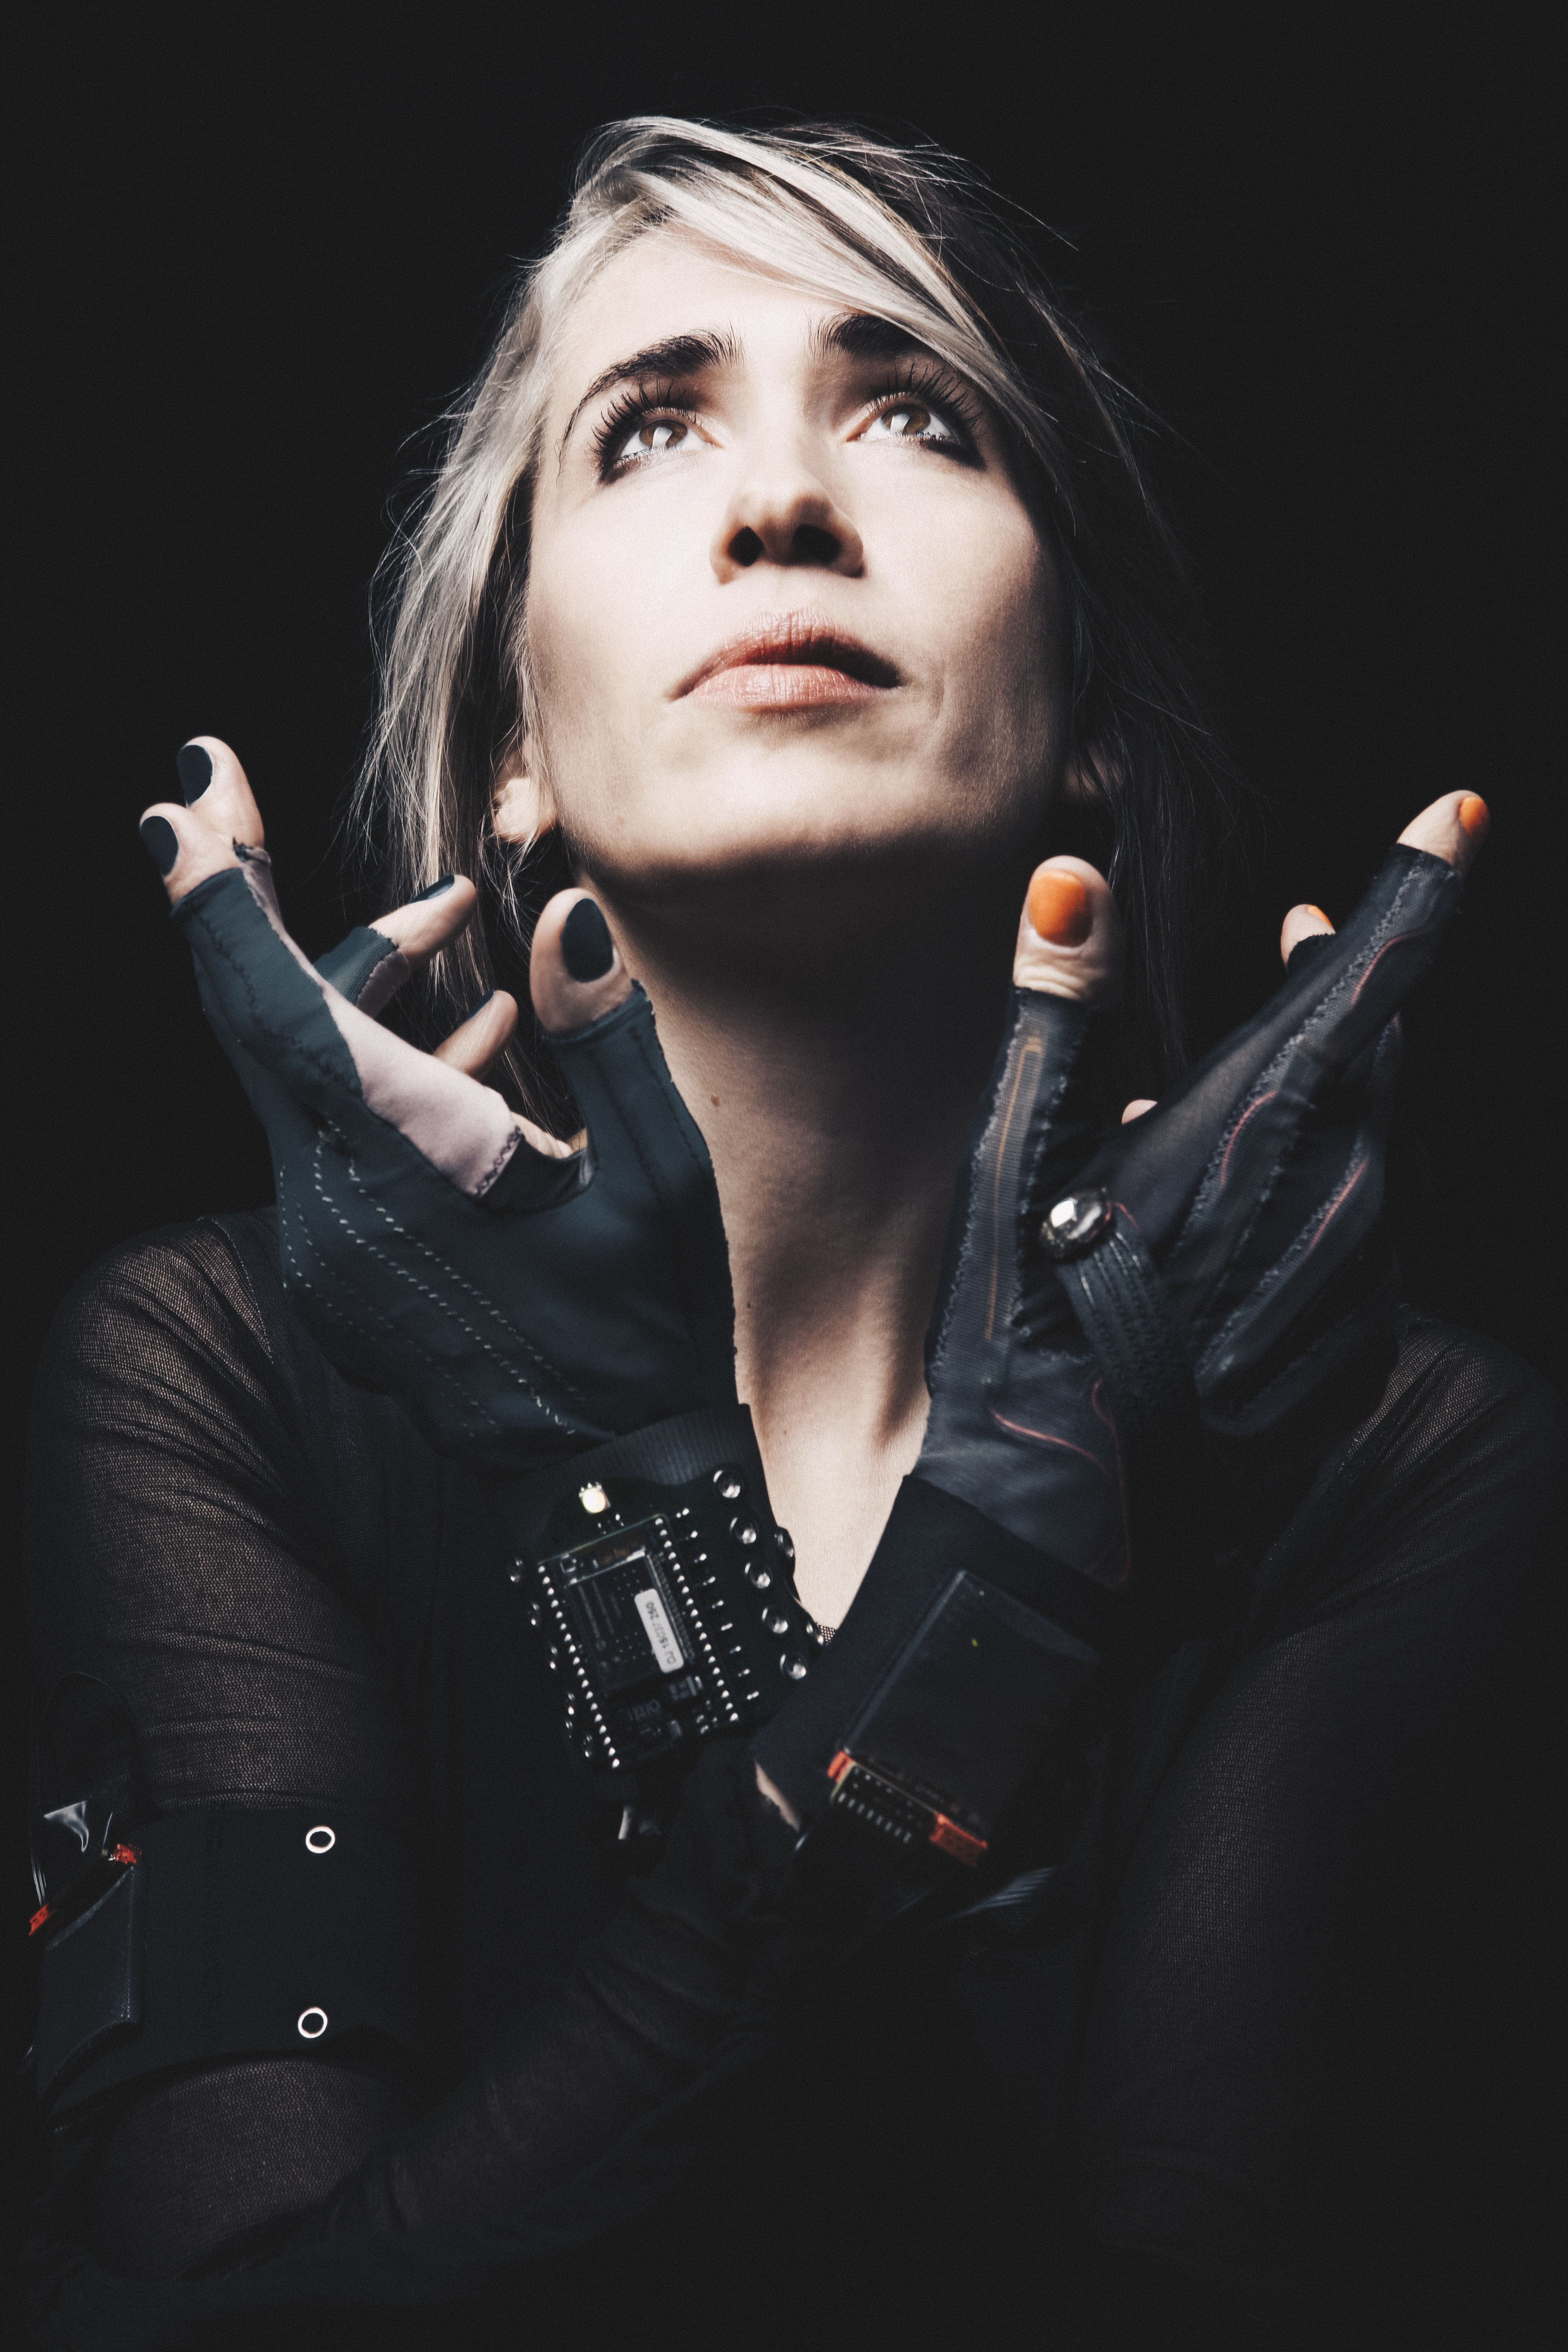 Imogen Heap On Her New App Making Music With Gloves Ariana